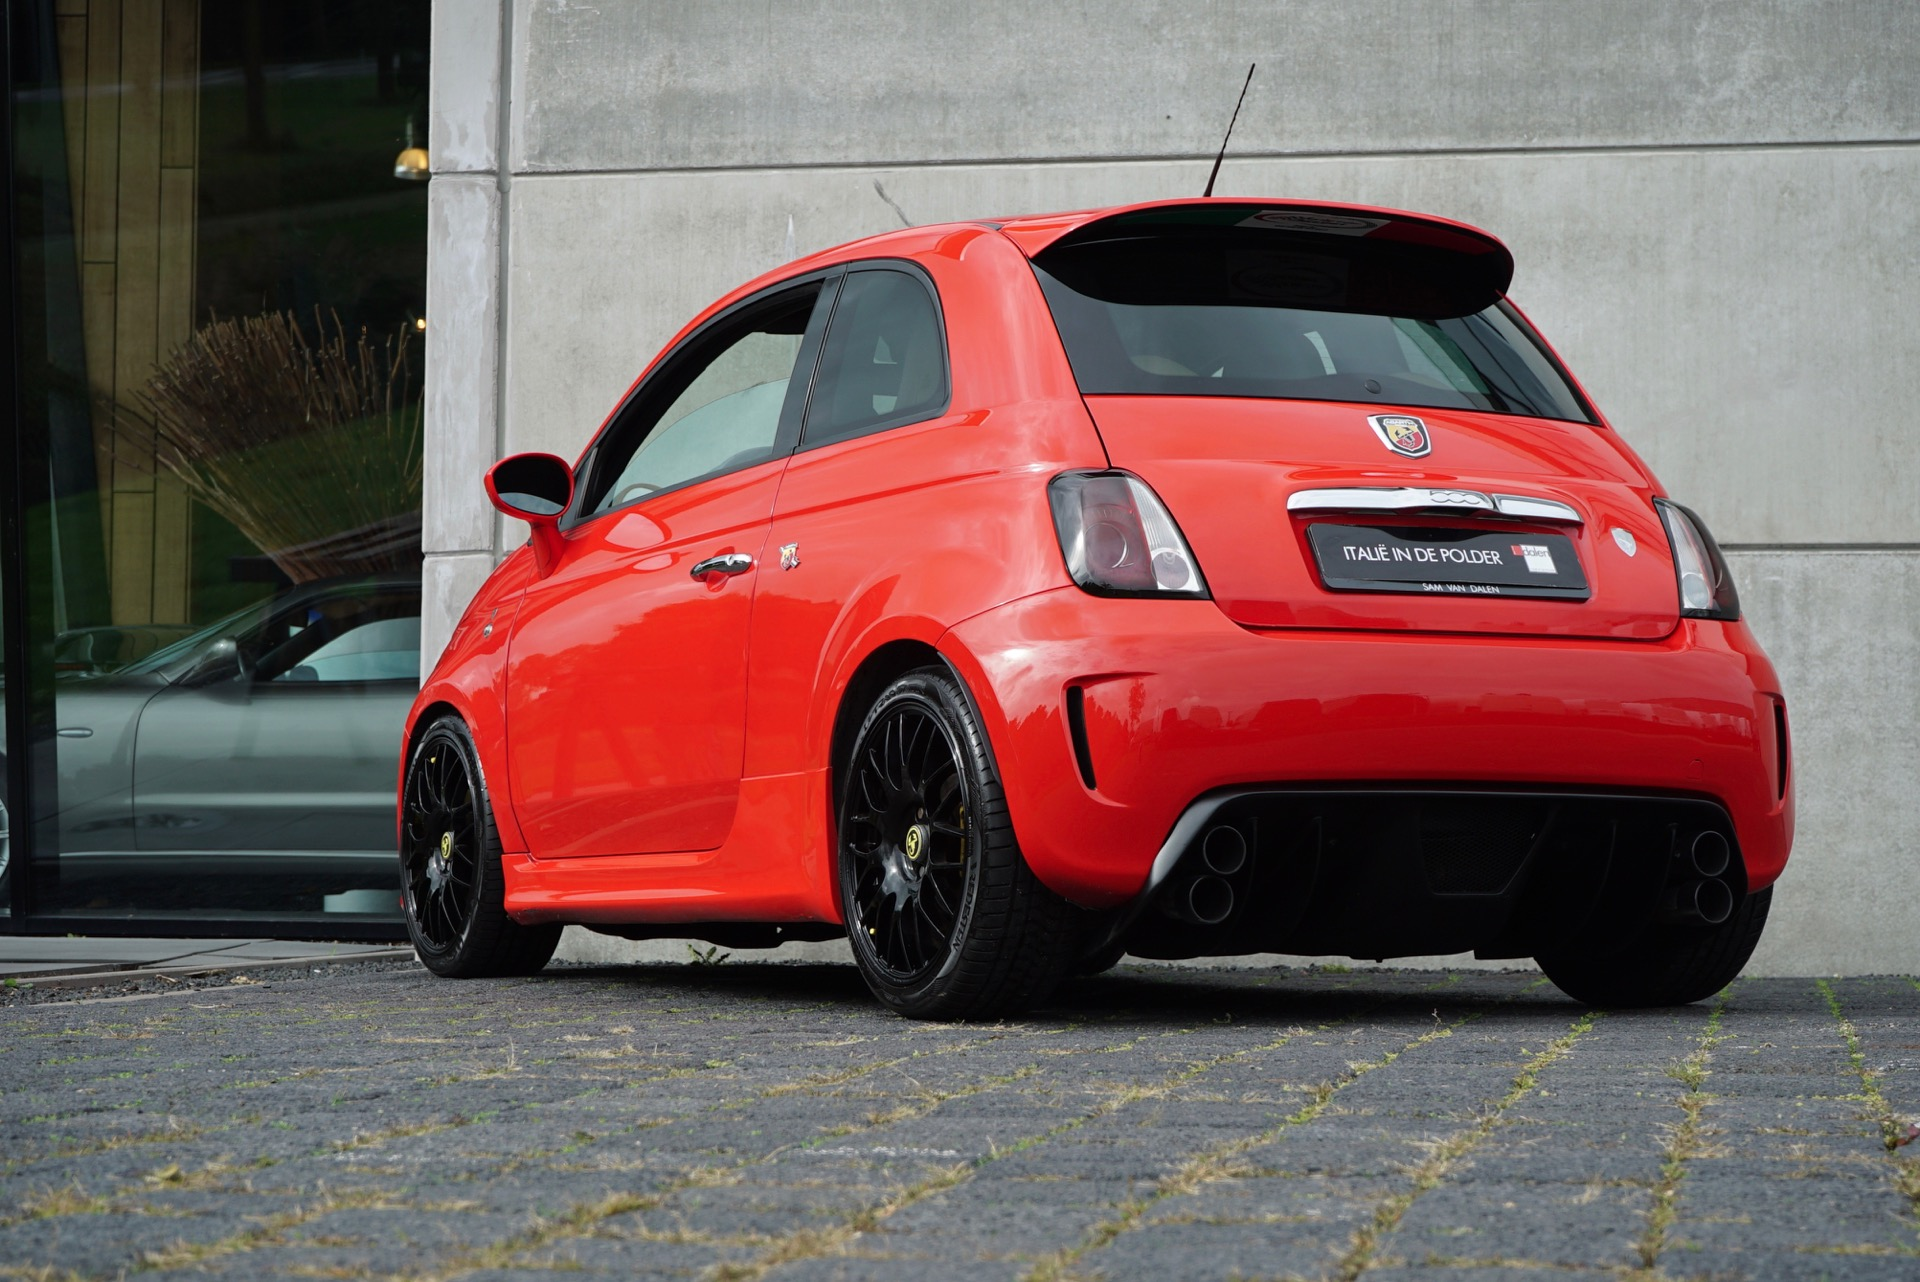 FIAT 500 TURBO ABARTH